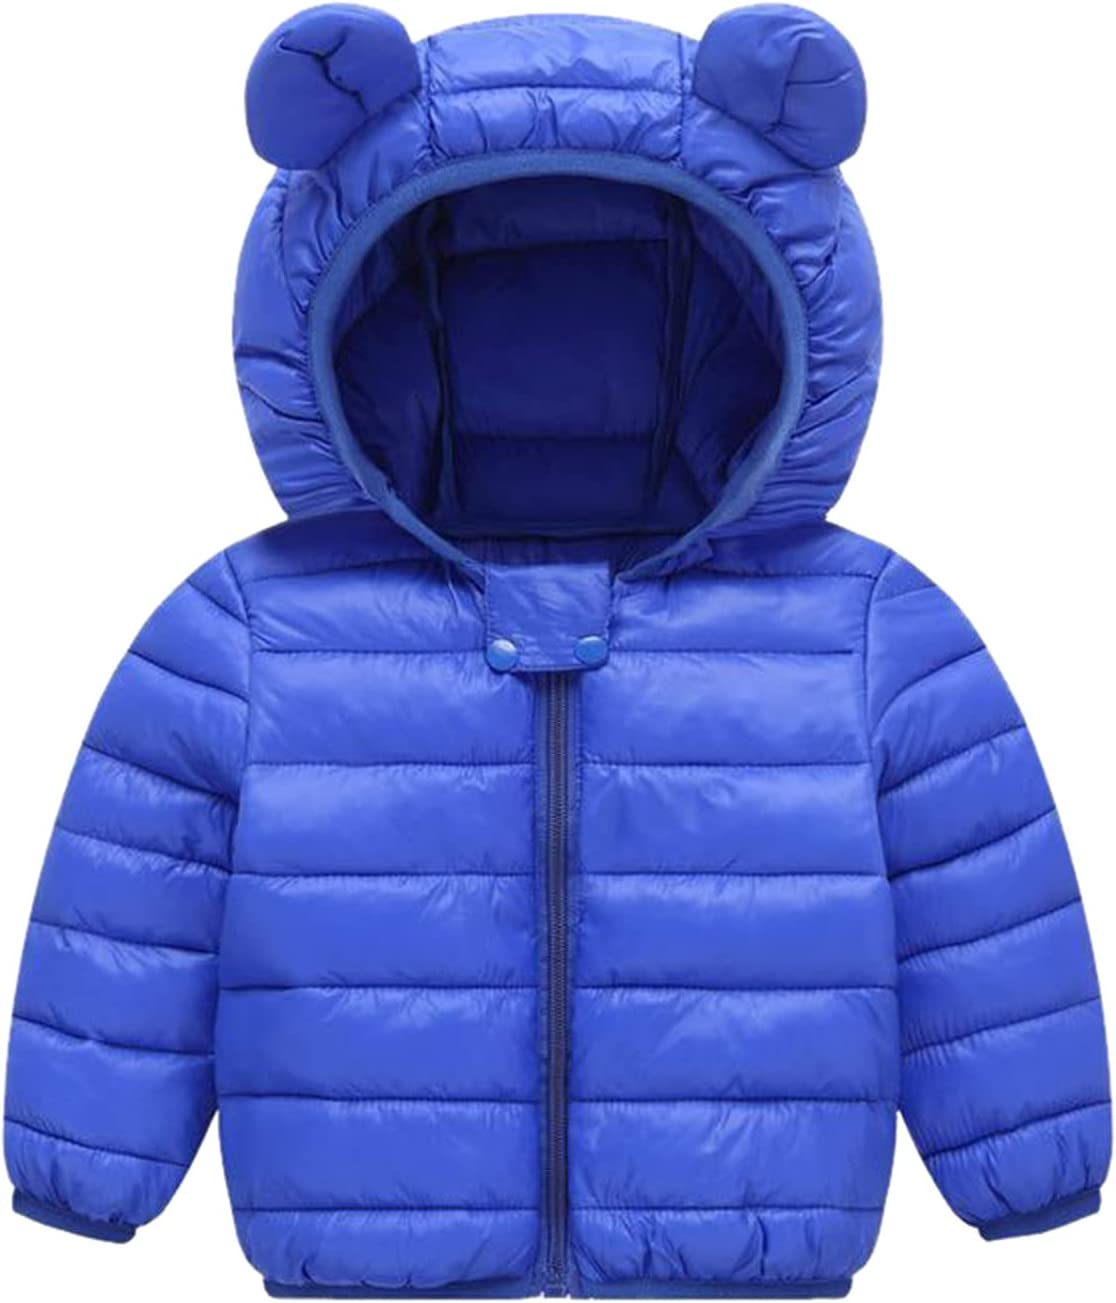 Ranking TOP5 Winter Down Coats for Kids Baby Girls Boys Hooded Jacket 5 ☆ popular Cute Ca